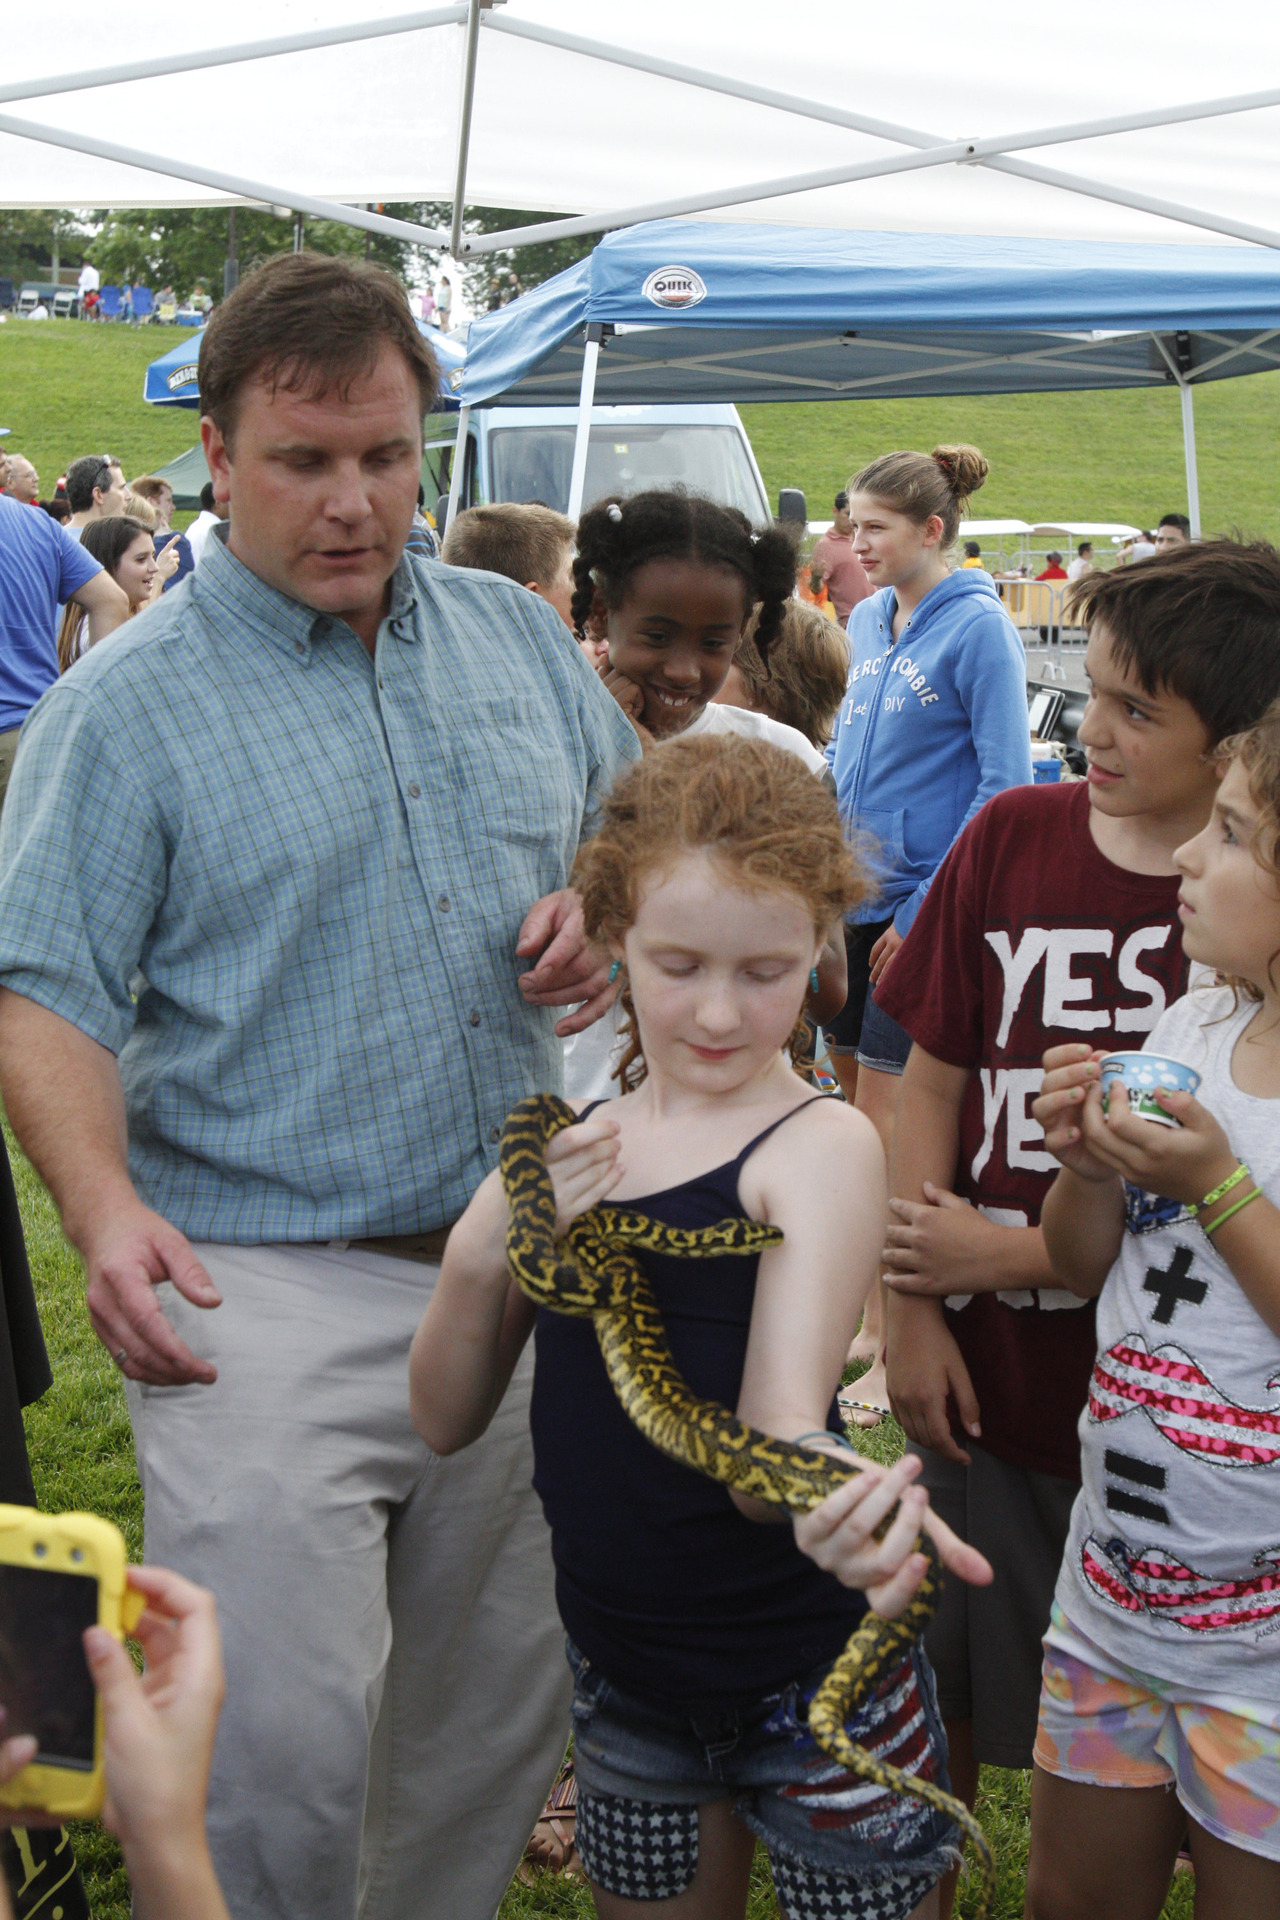 Celia Holden, 9, of White Plains holds a snake under the watchful eye of Chris Evers, founder of Animal Embassy based in Stamford, Conn. (Dave Gershgorn/ The Journal News)